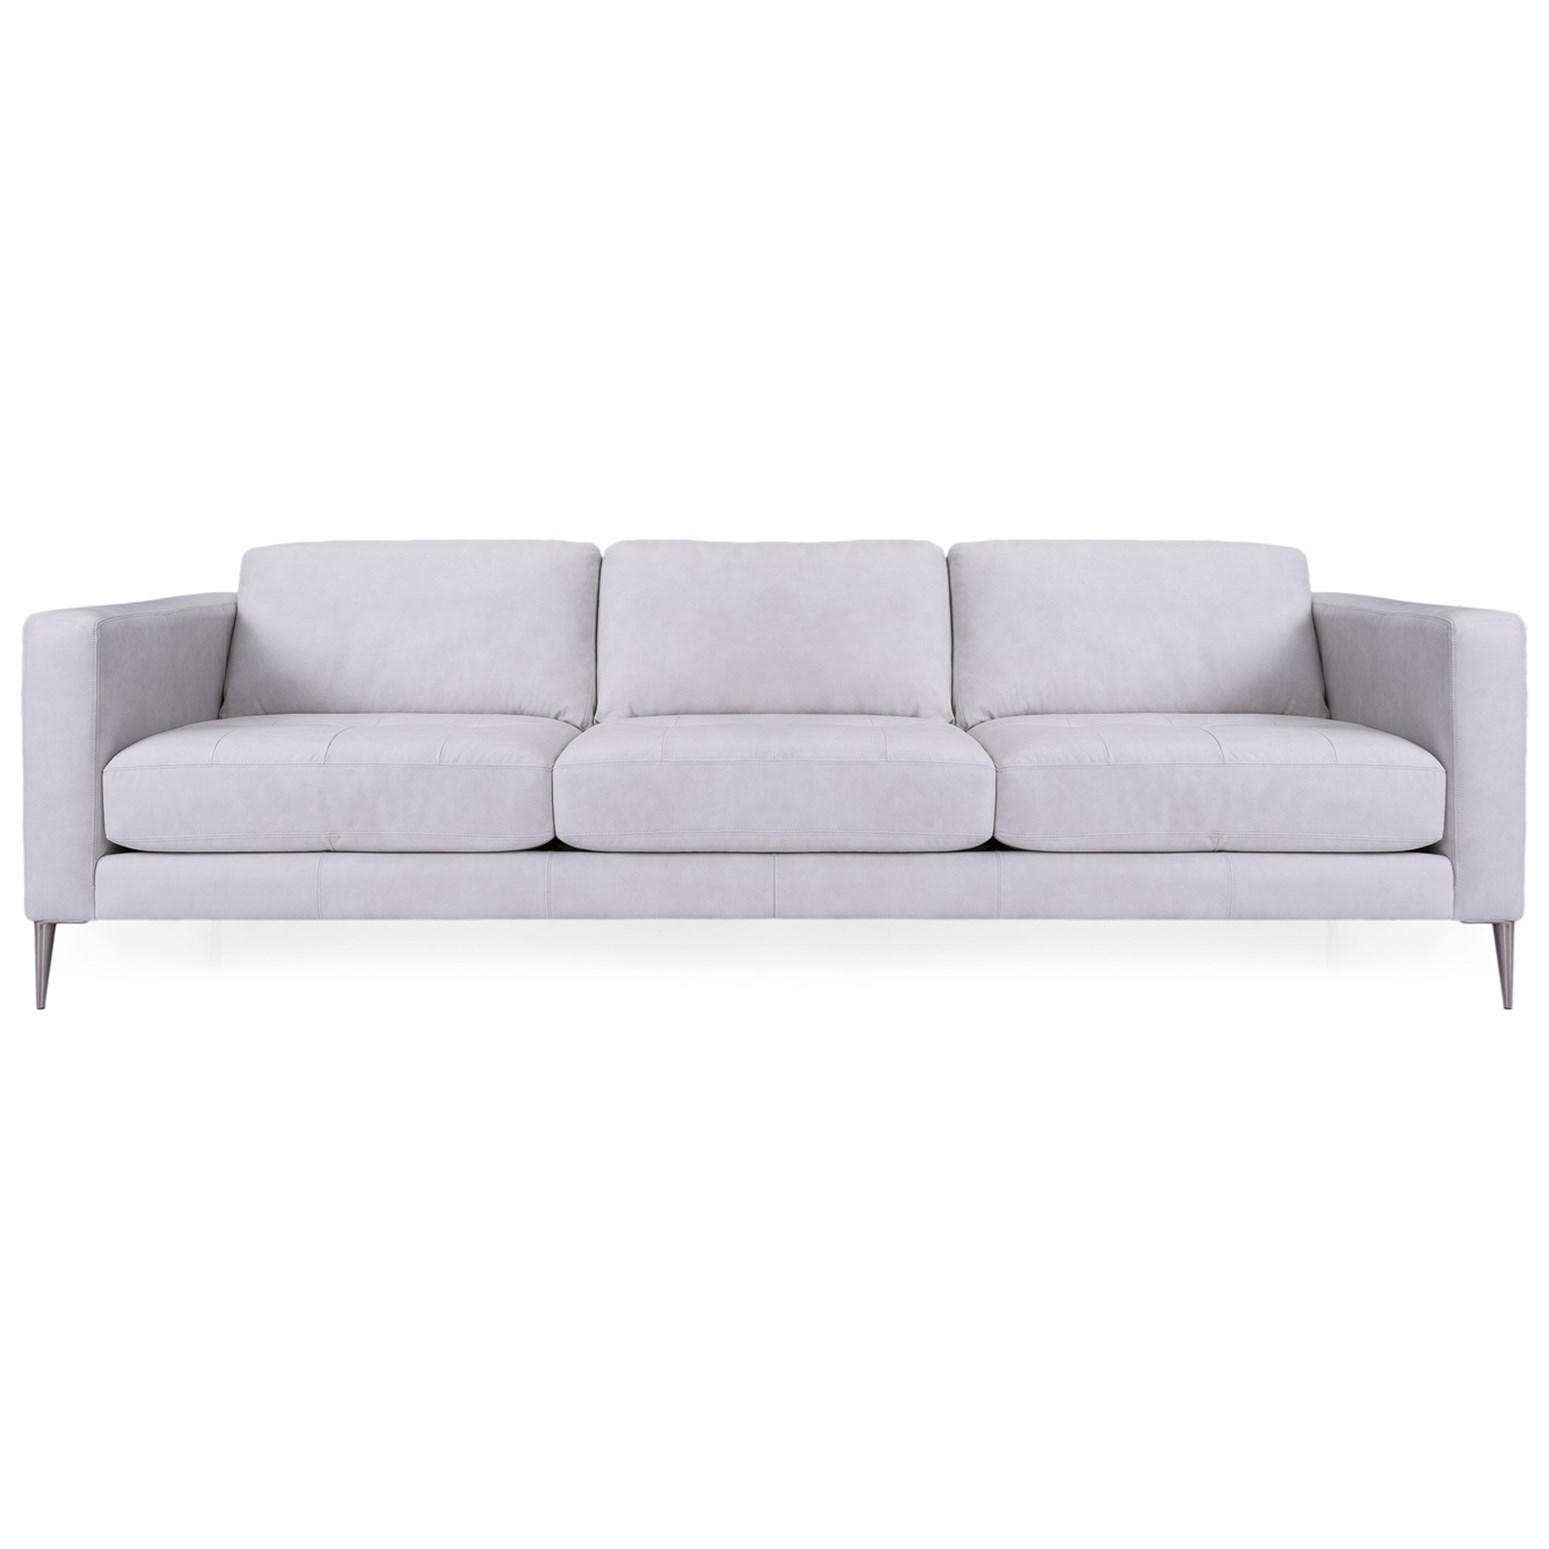 3795 Sofa by Decor-Rest at Wayside Furniture